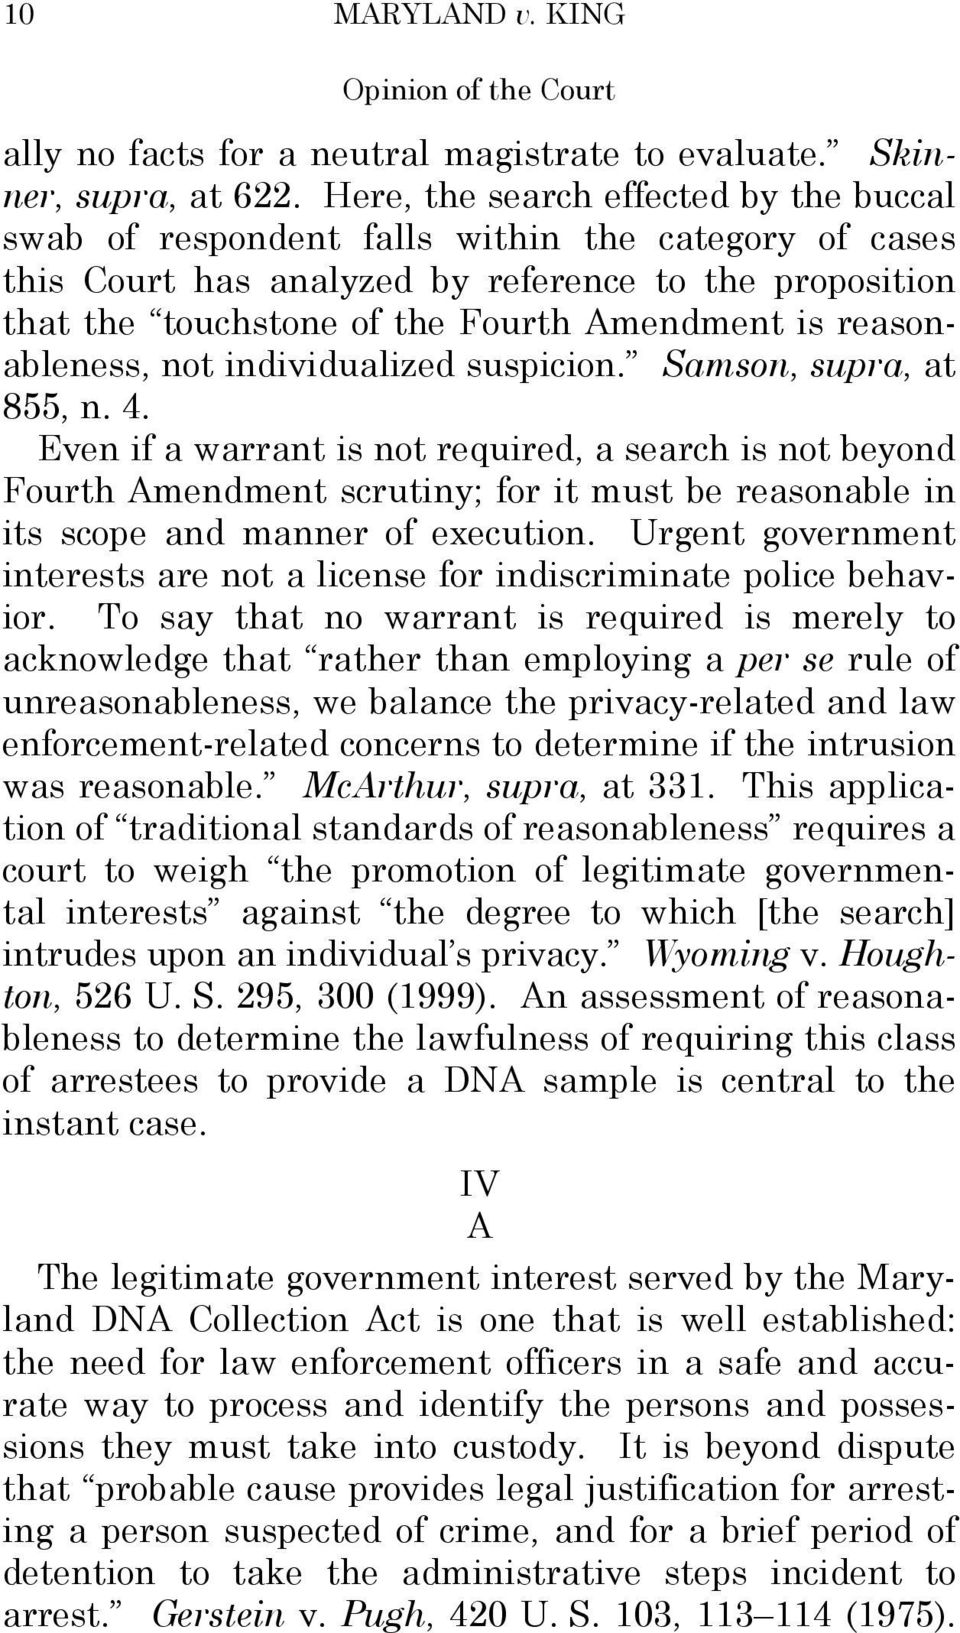 reasonableness, not individualized suspicion. Samson, supra, at 855, n. 4.